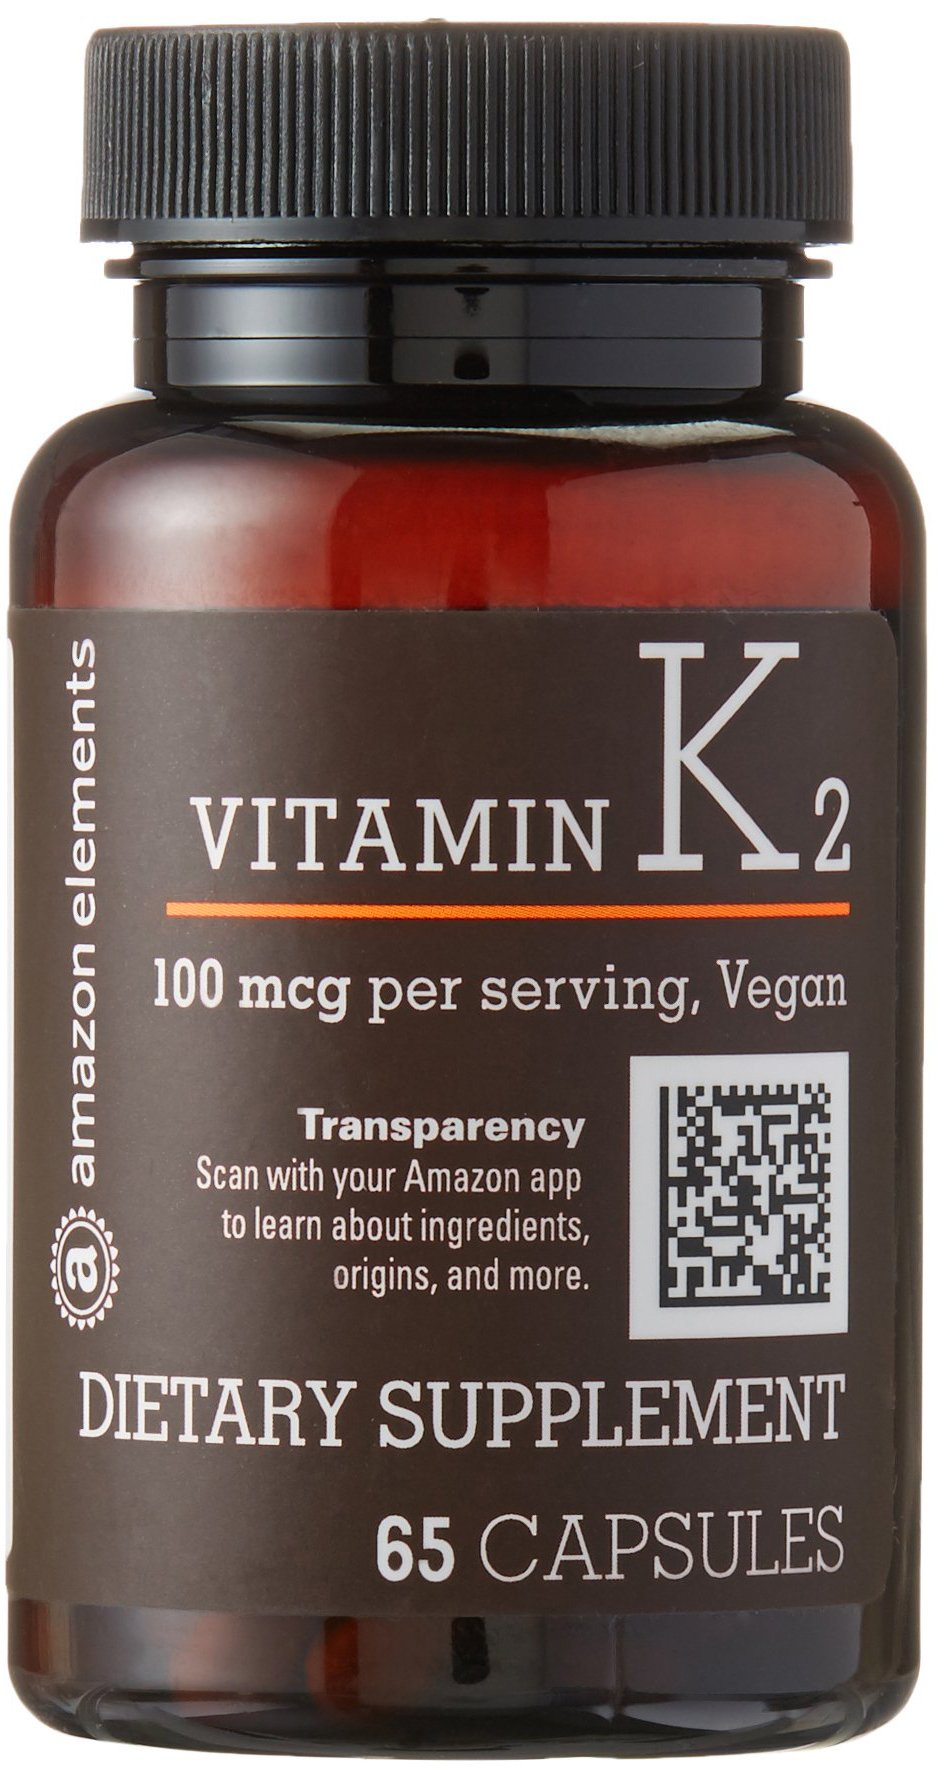 Amazon Elements Vitamin K2 100 mcg, Vegan, 65 Capsules, 2 month supply